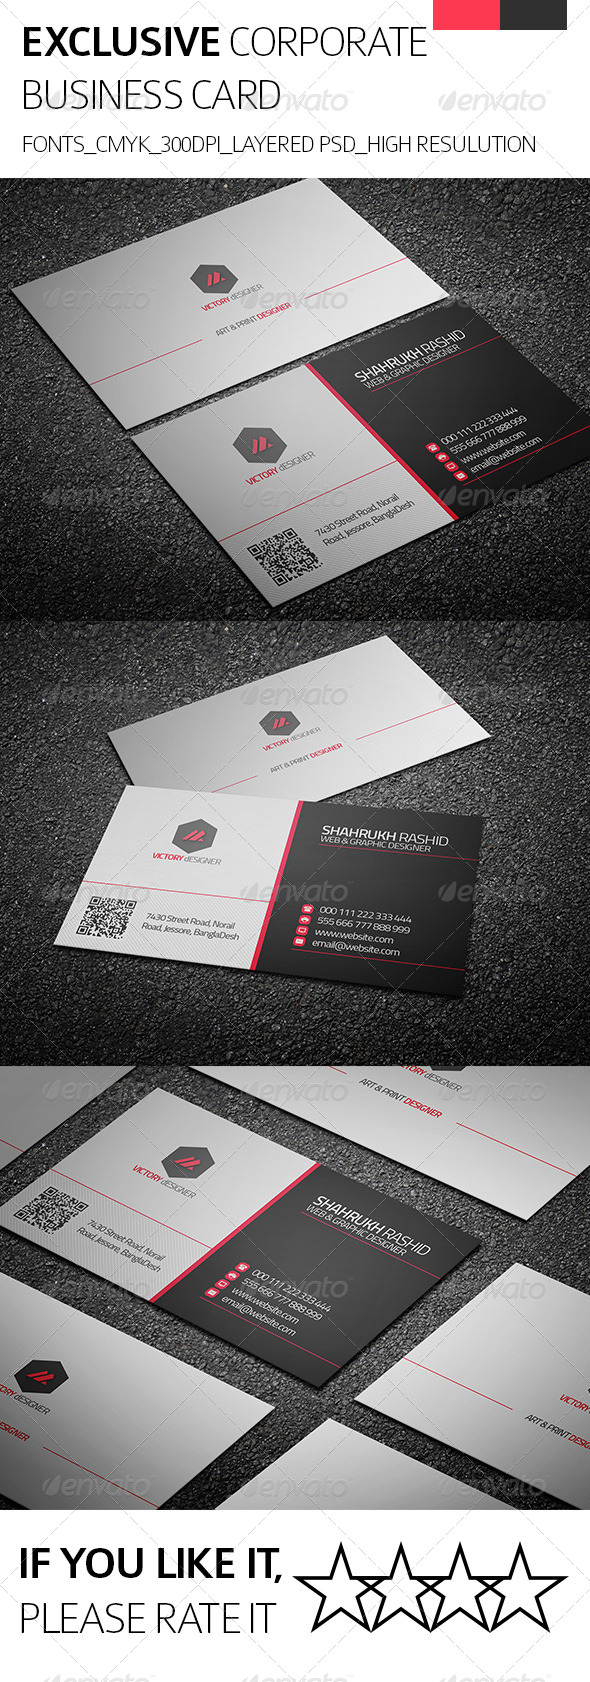 Exclusive & Corporate Business Card - Corporate Business Cards